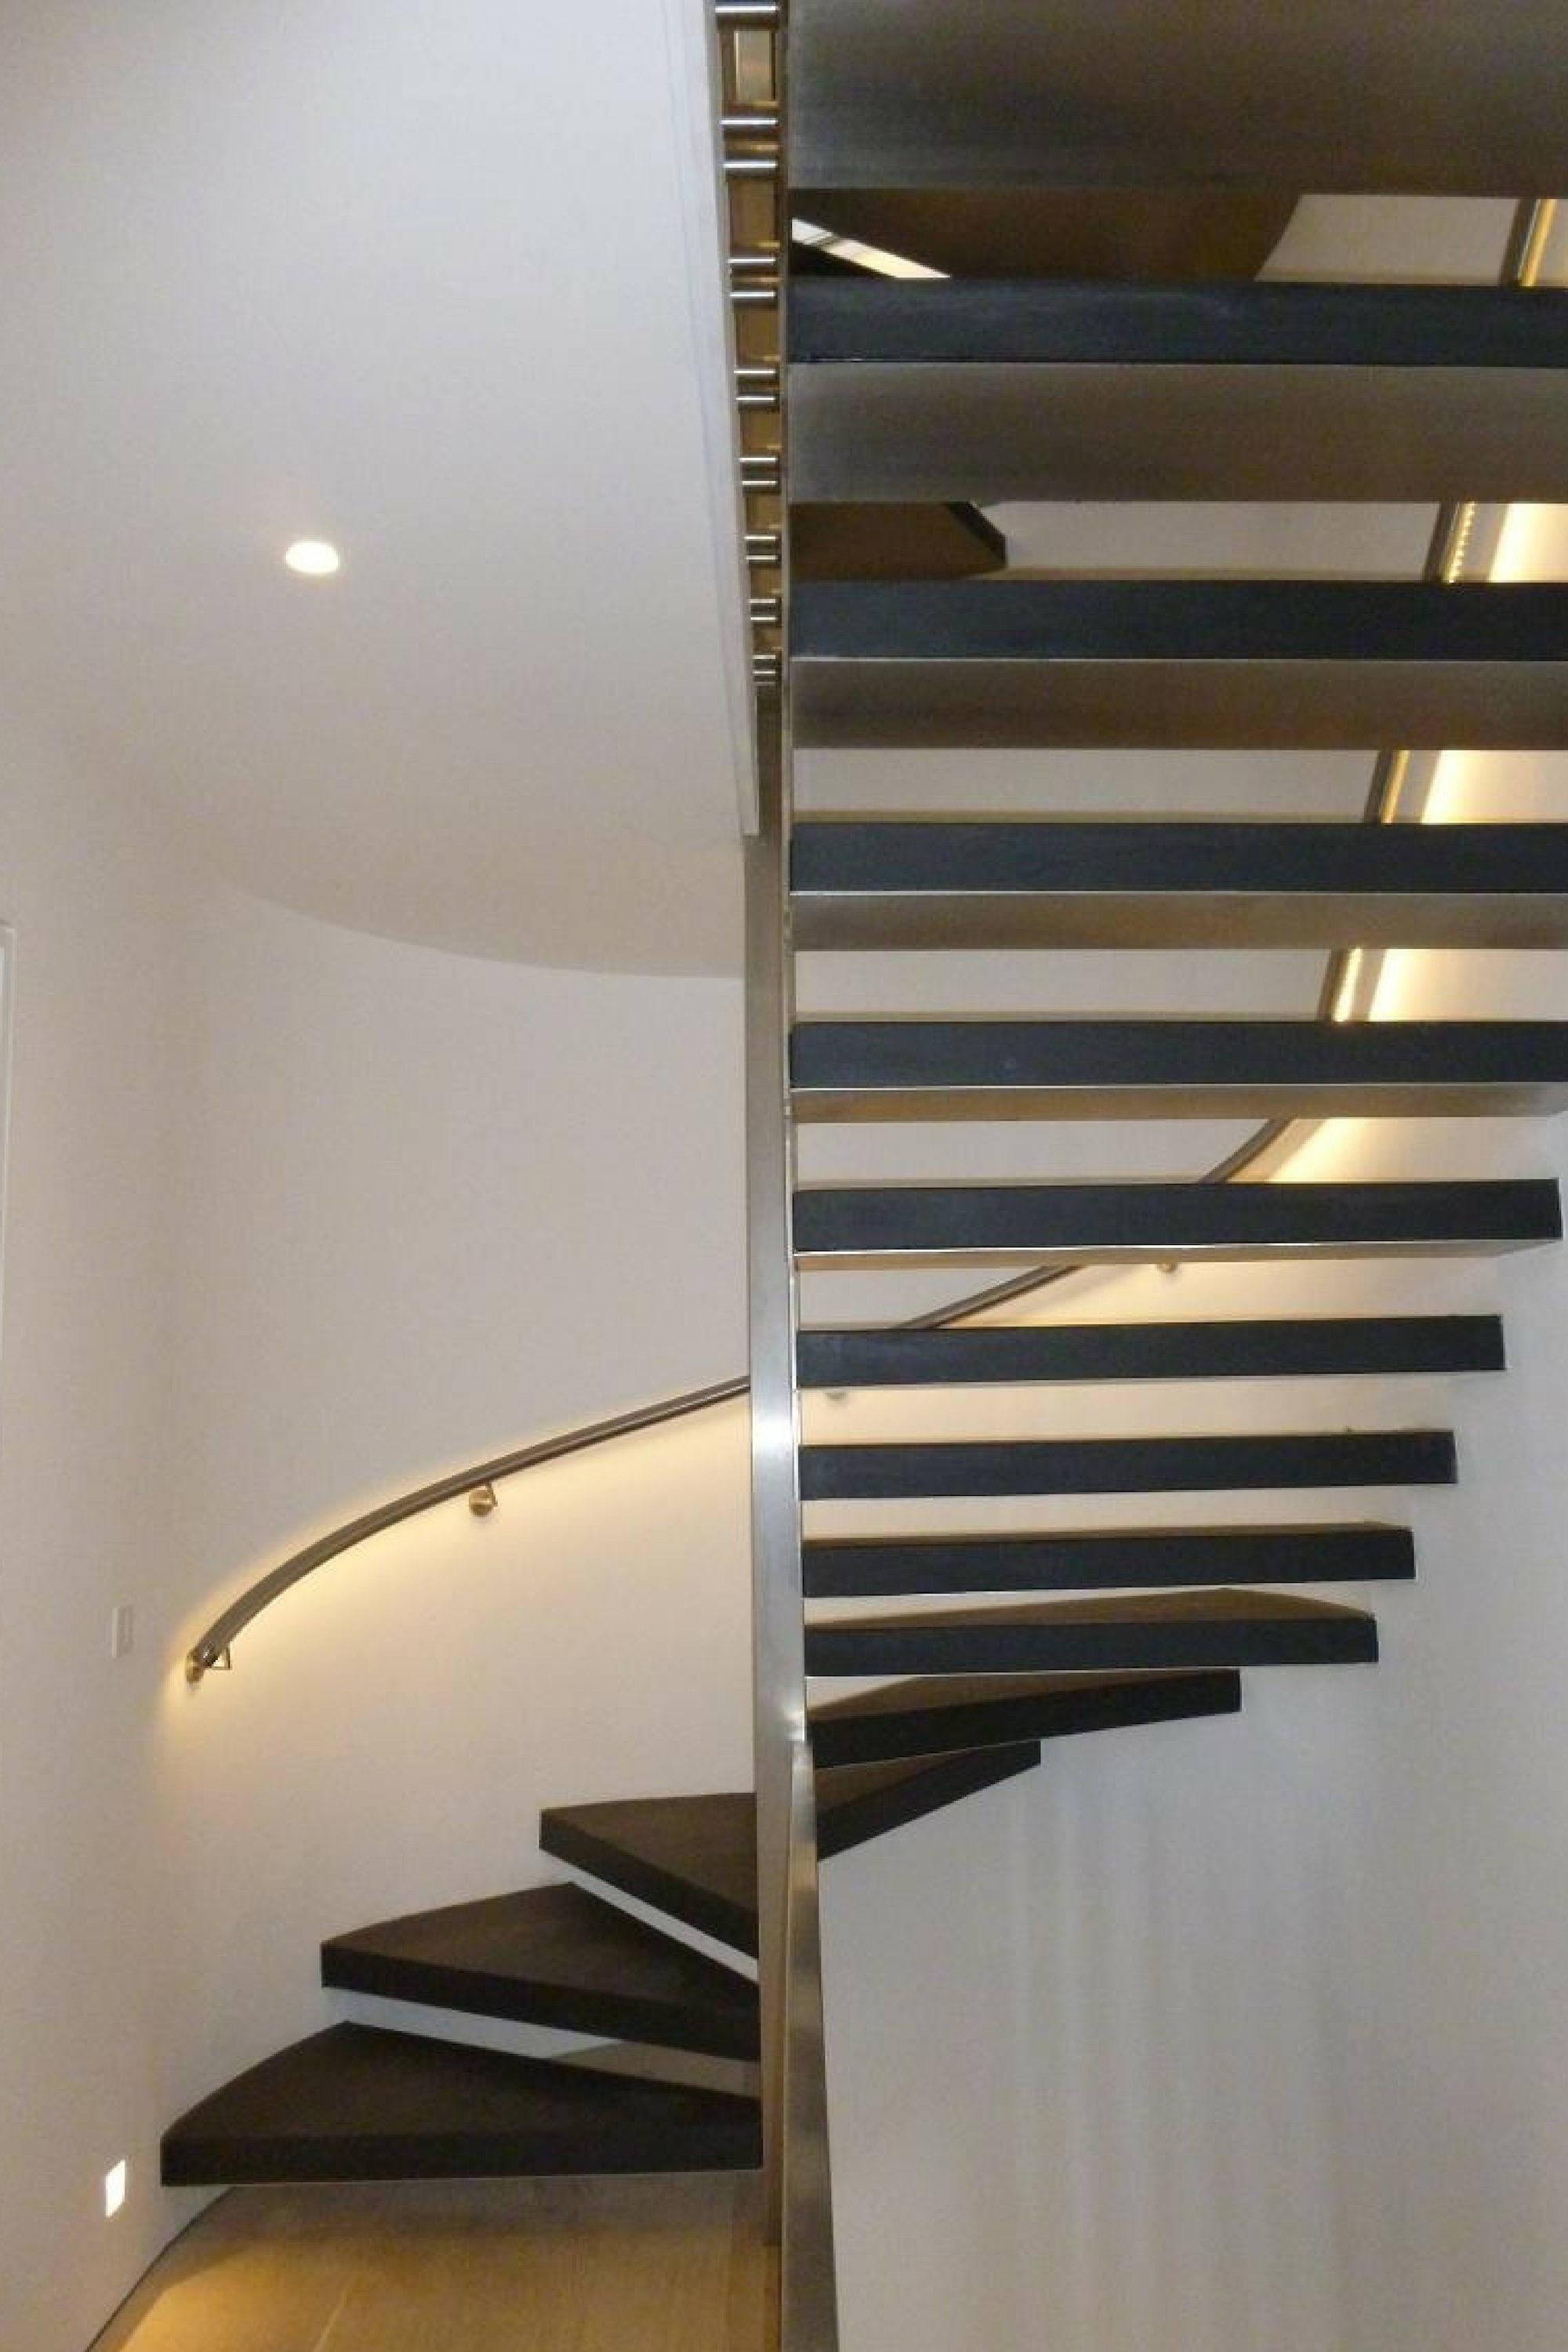 Black tread helical staircase